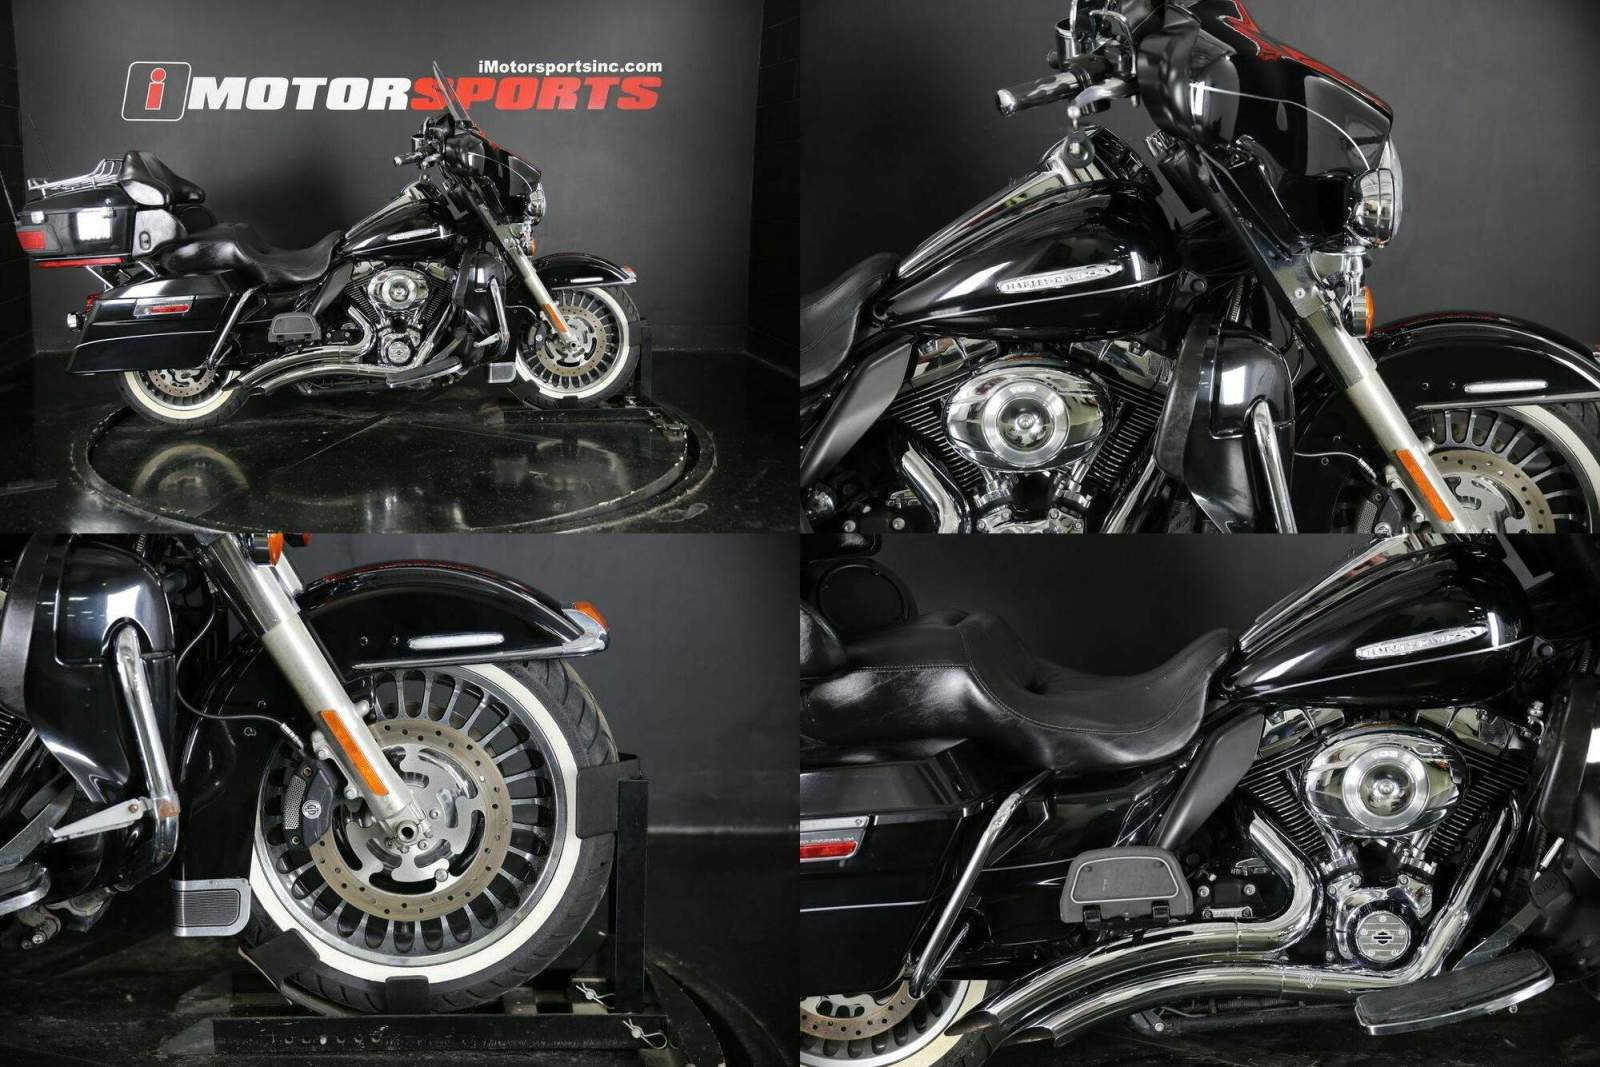 2013 Harley-Davidson FLHTK - Electra Glide Ultra Limited Black used for sale craigslist